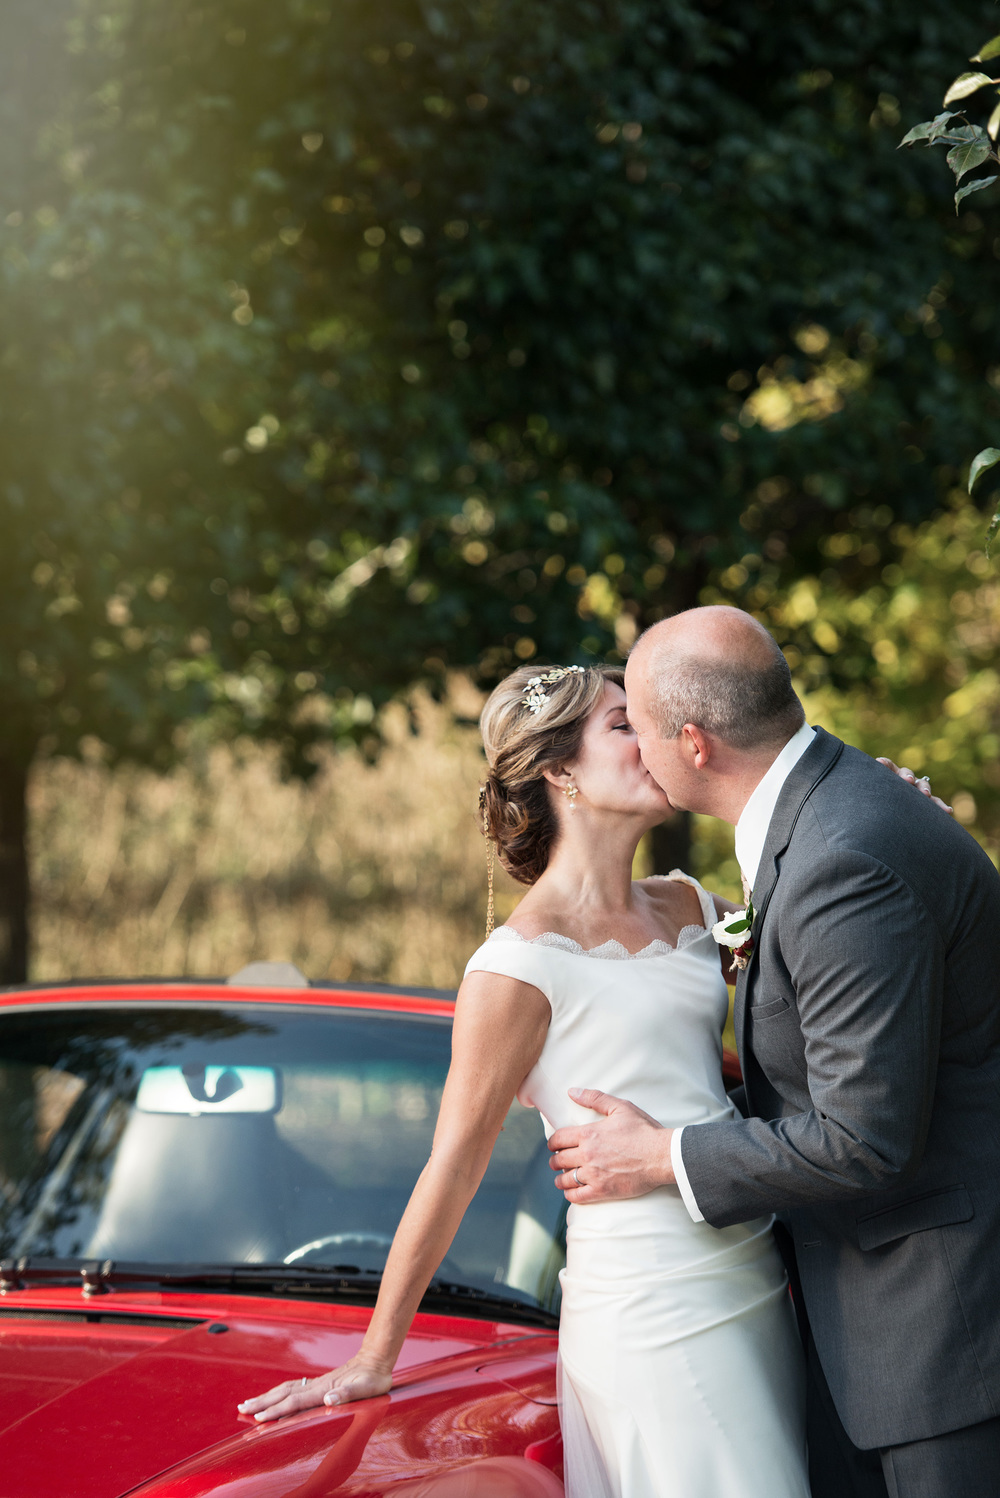 Livermore Winery vow renewal wedding anniversary with groom's vintage porsche carrera at wente